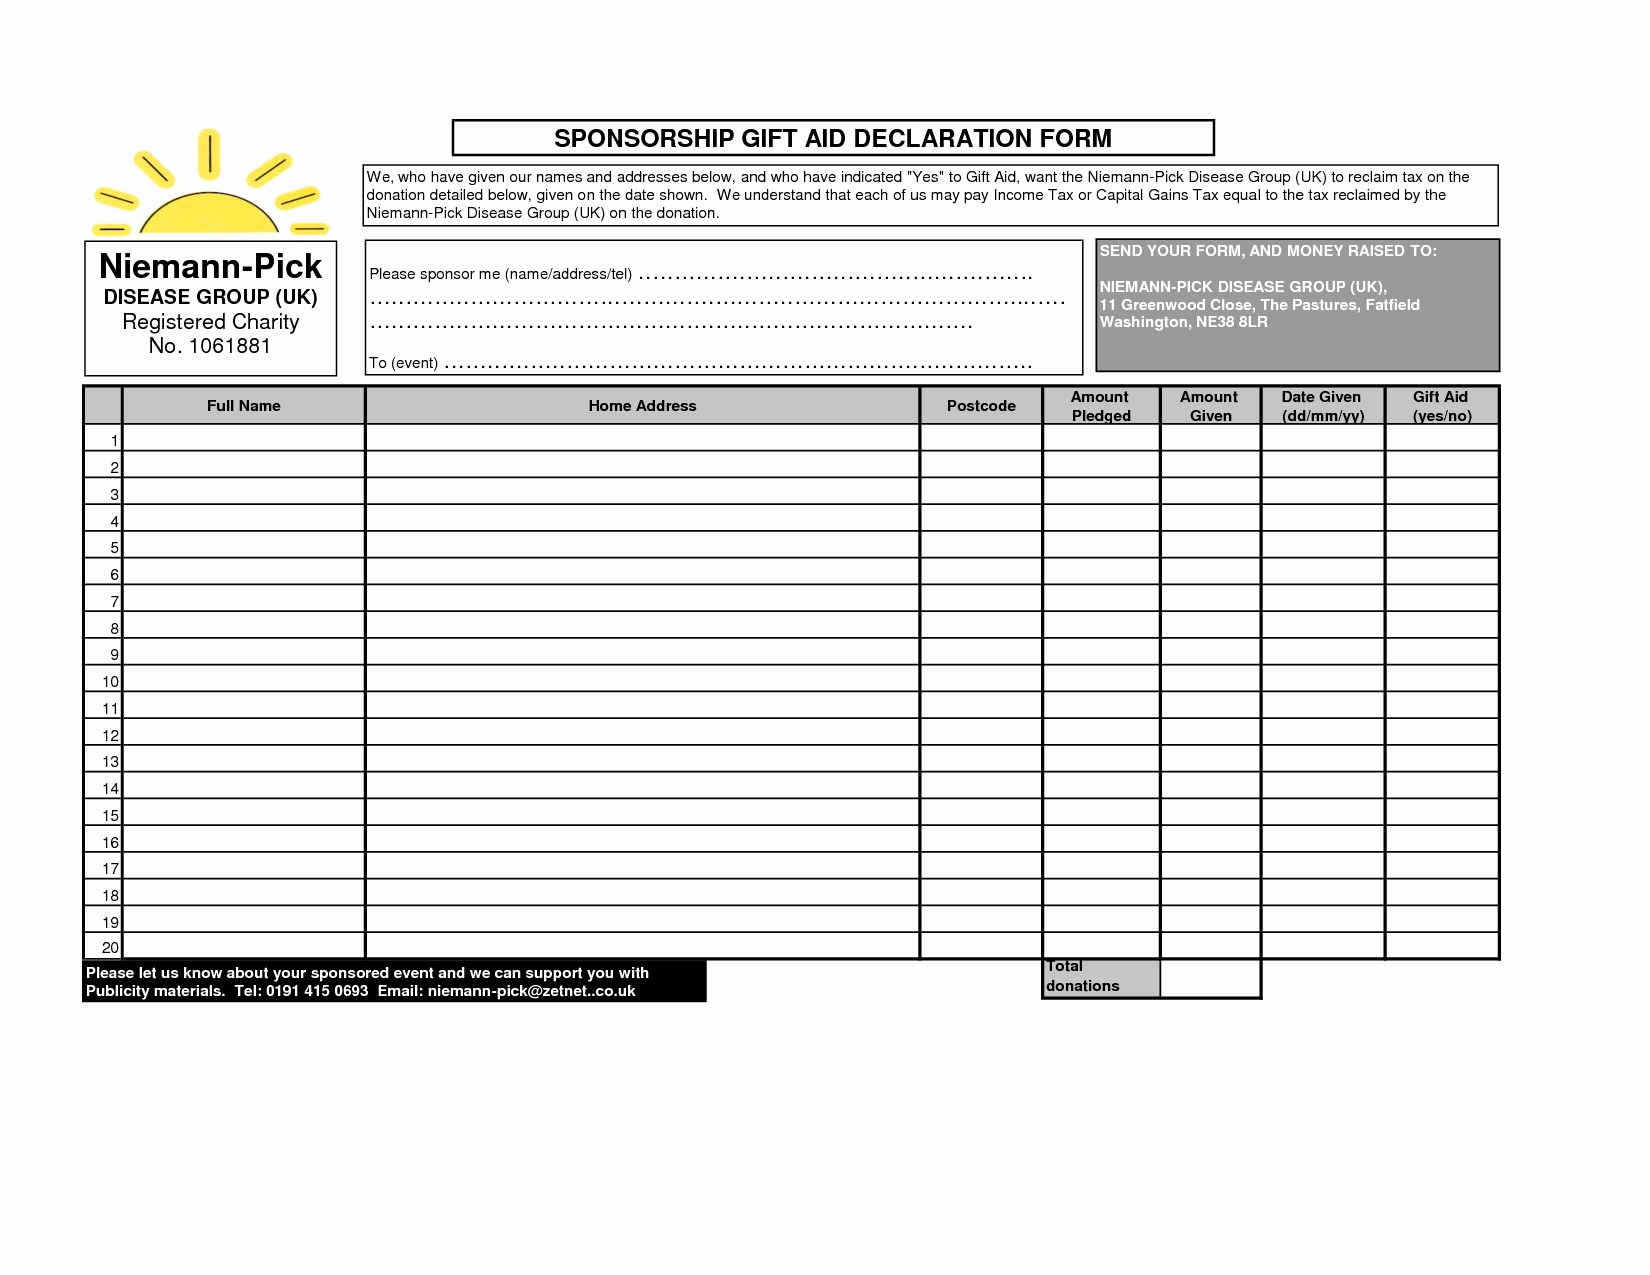 Bookkeeping Spreadsheet Using Microsoft Excel Awesome Small Business intended for Bookkeeping Spreadsheet